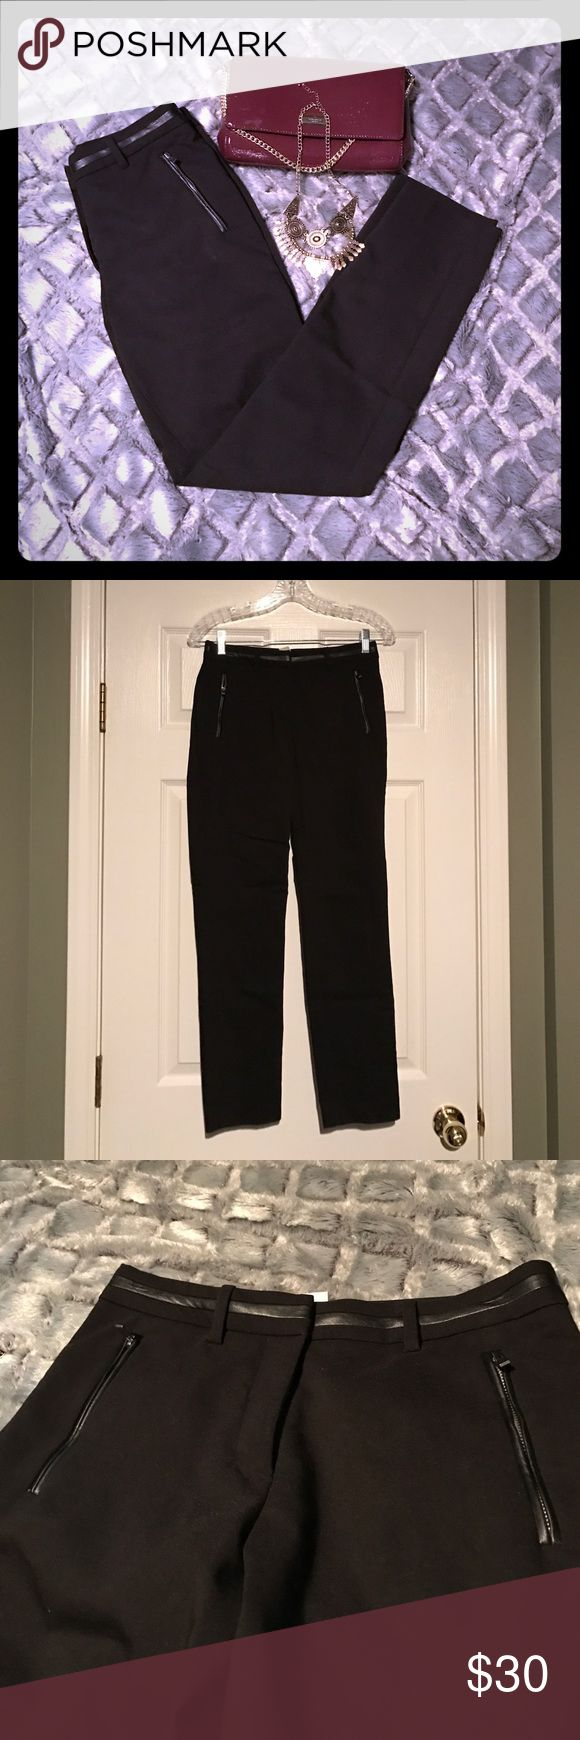 "Black cigarette pants w/ faux leather trim detail Black cigarette pants with faux leather trim detailing at zippered pockets and waste. 28"" from hem to crotch. 14"" waist when laid flat. In perfect condition! Size 4, but fits like a 0/2. H&M Pants Skinny"